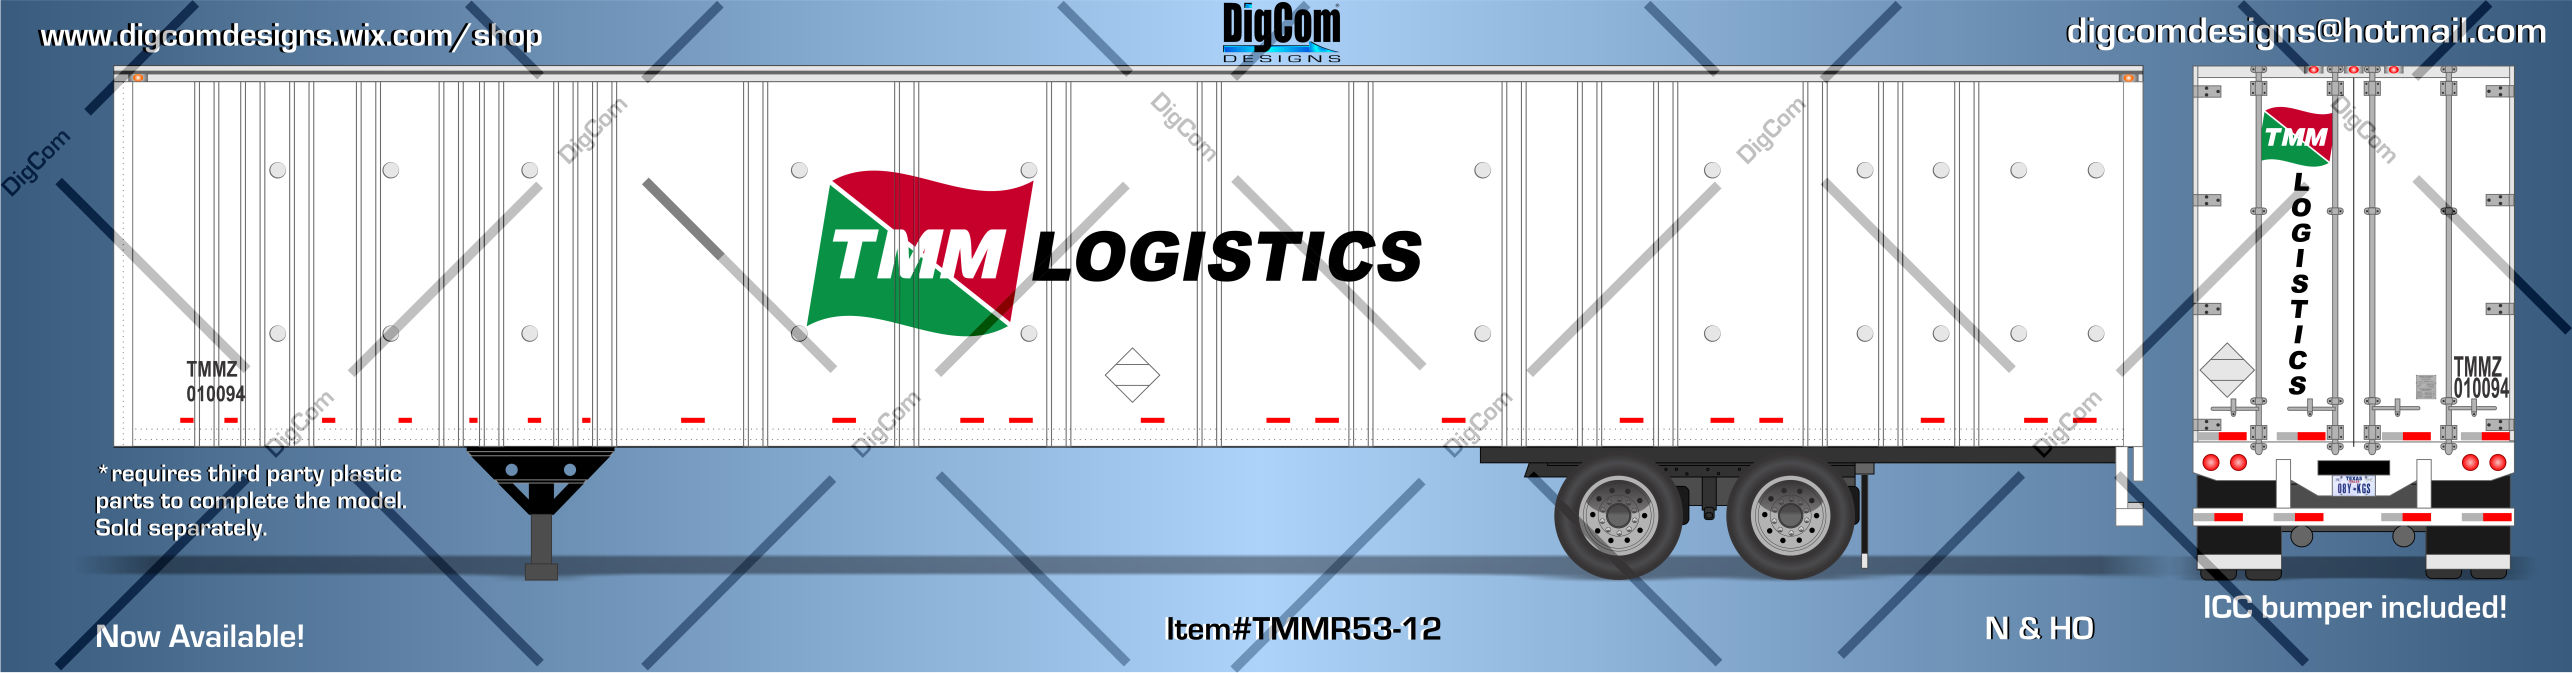 TMM LOGISTICS TRAILER DESIGN.jpg